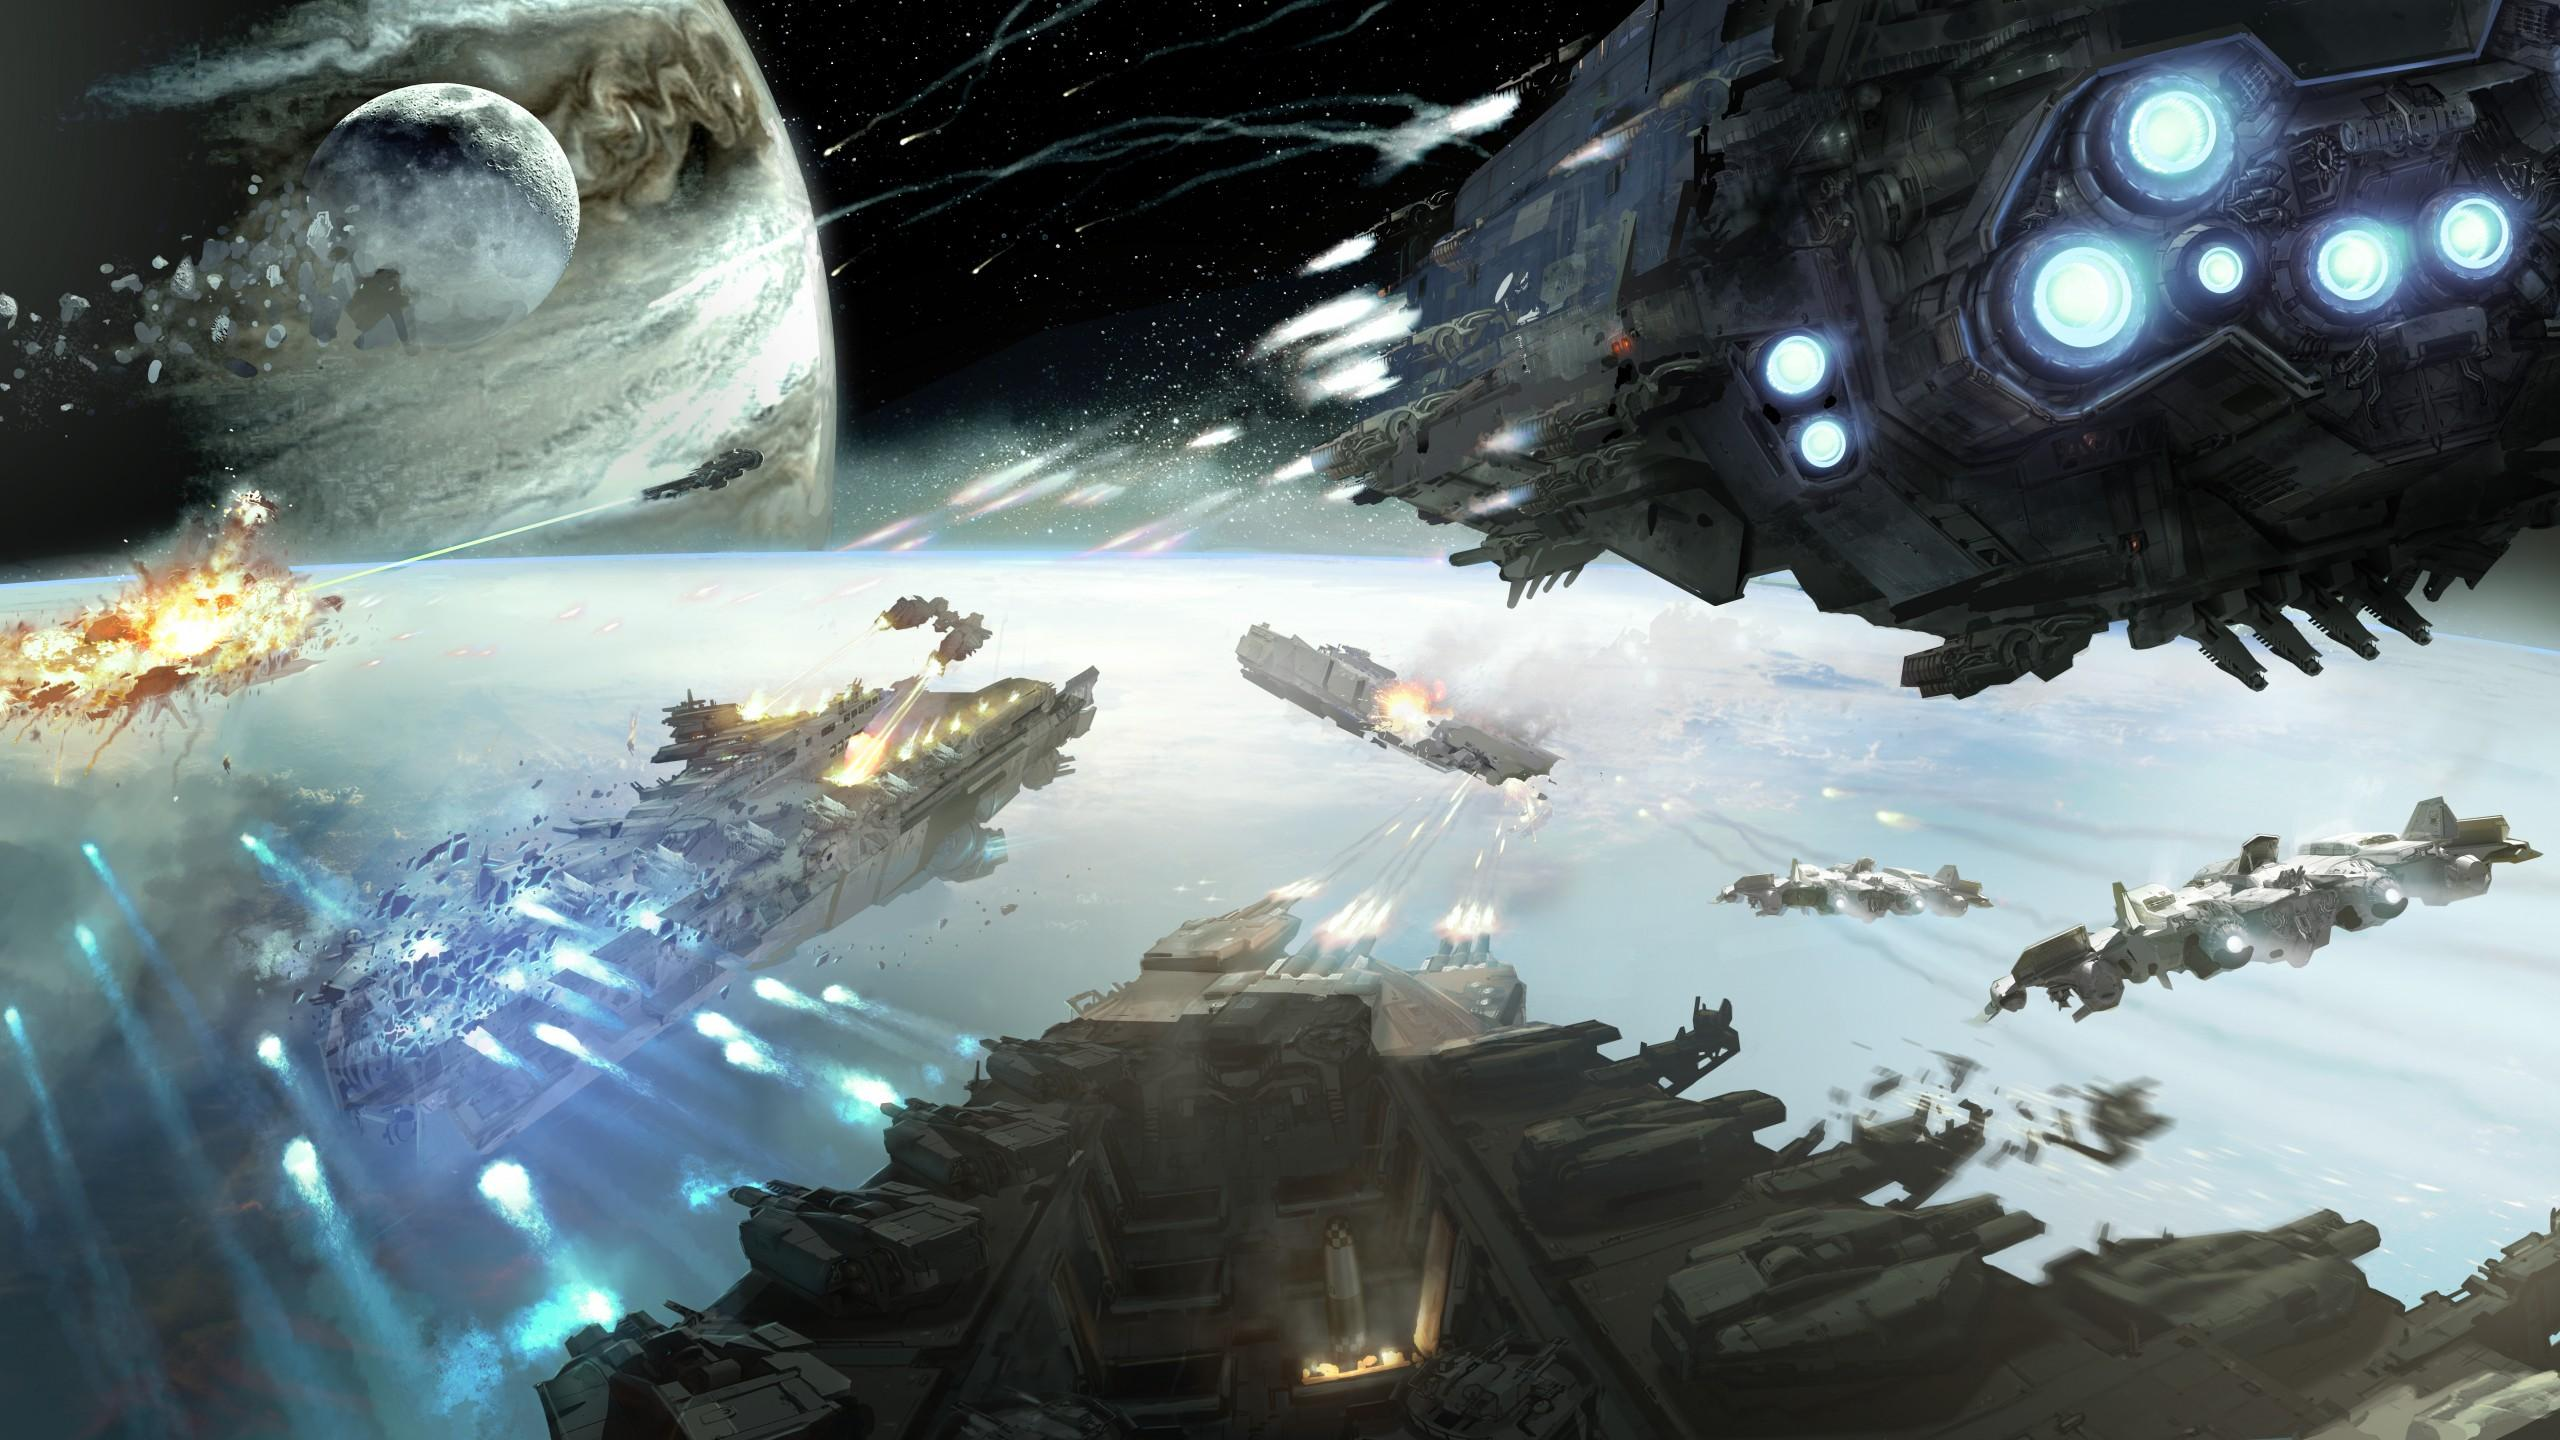 Space Battle Wallpapers Posted By Ryan Simpson